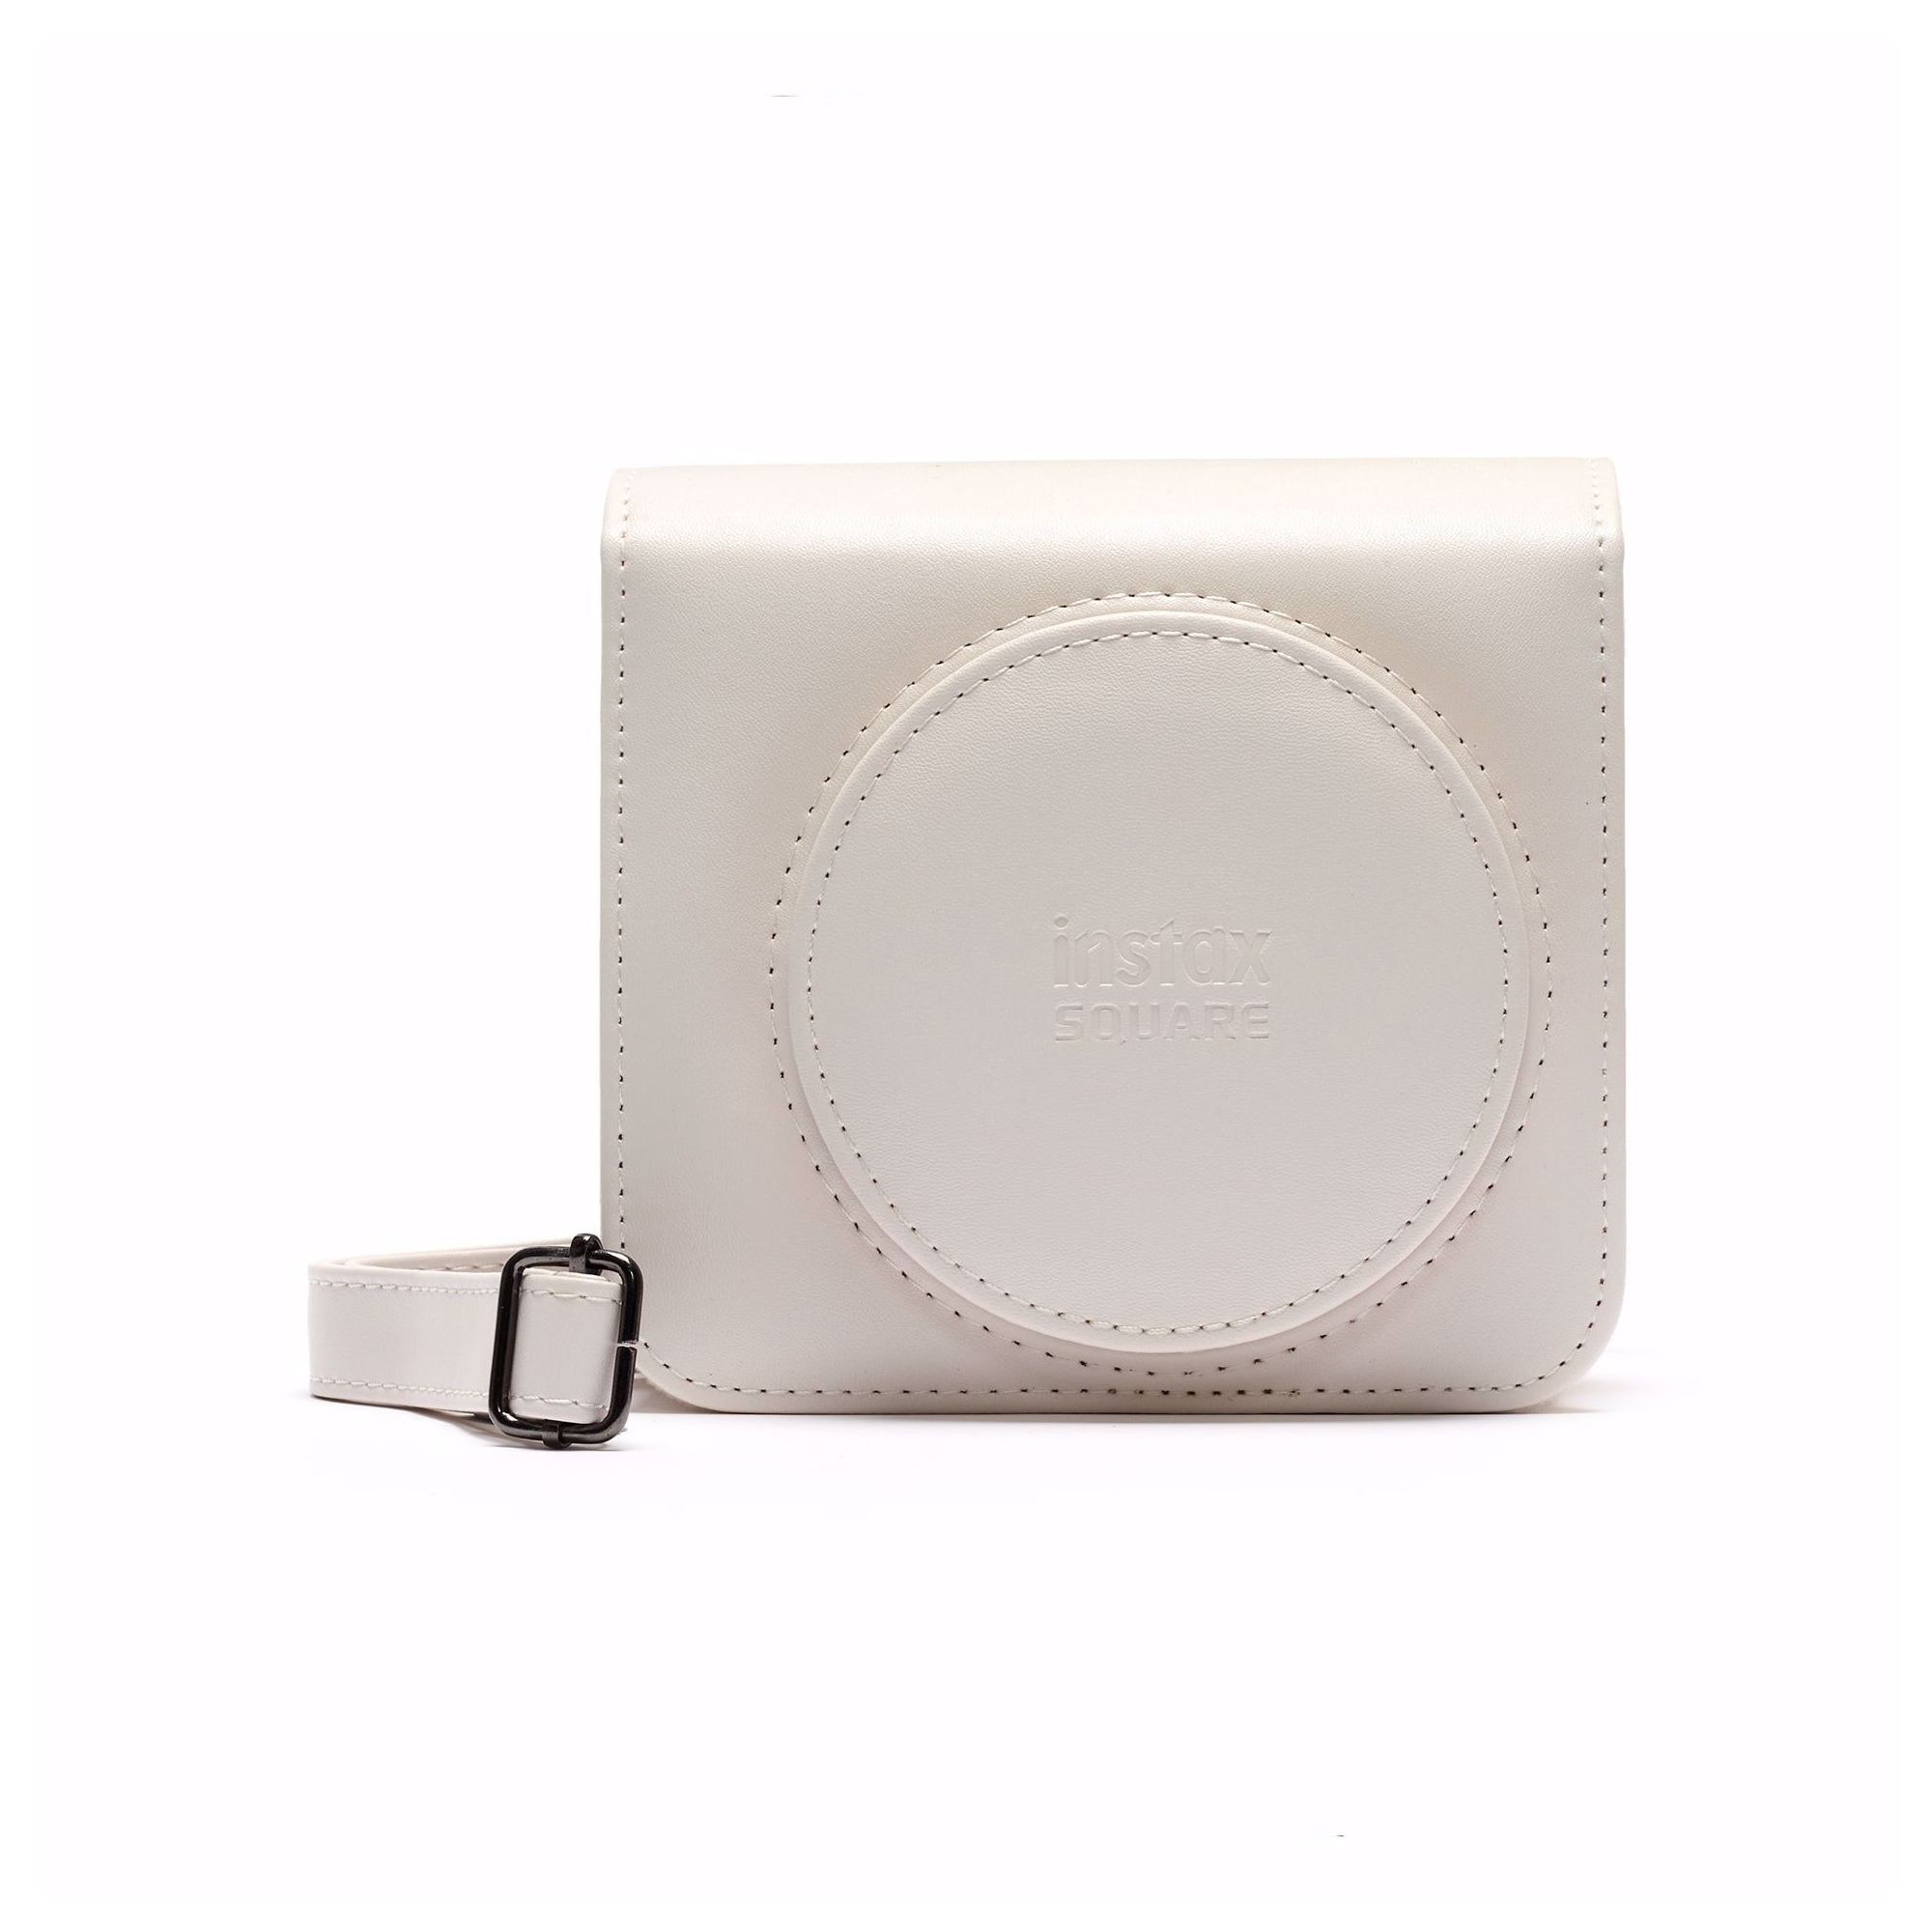 Fujifilm Instax Square SQ1 Case Chalk White